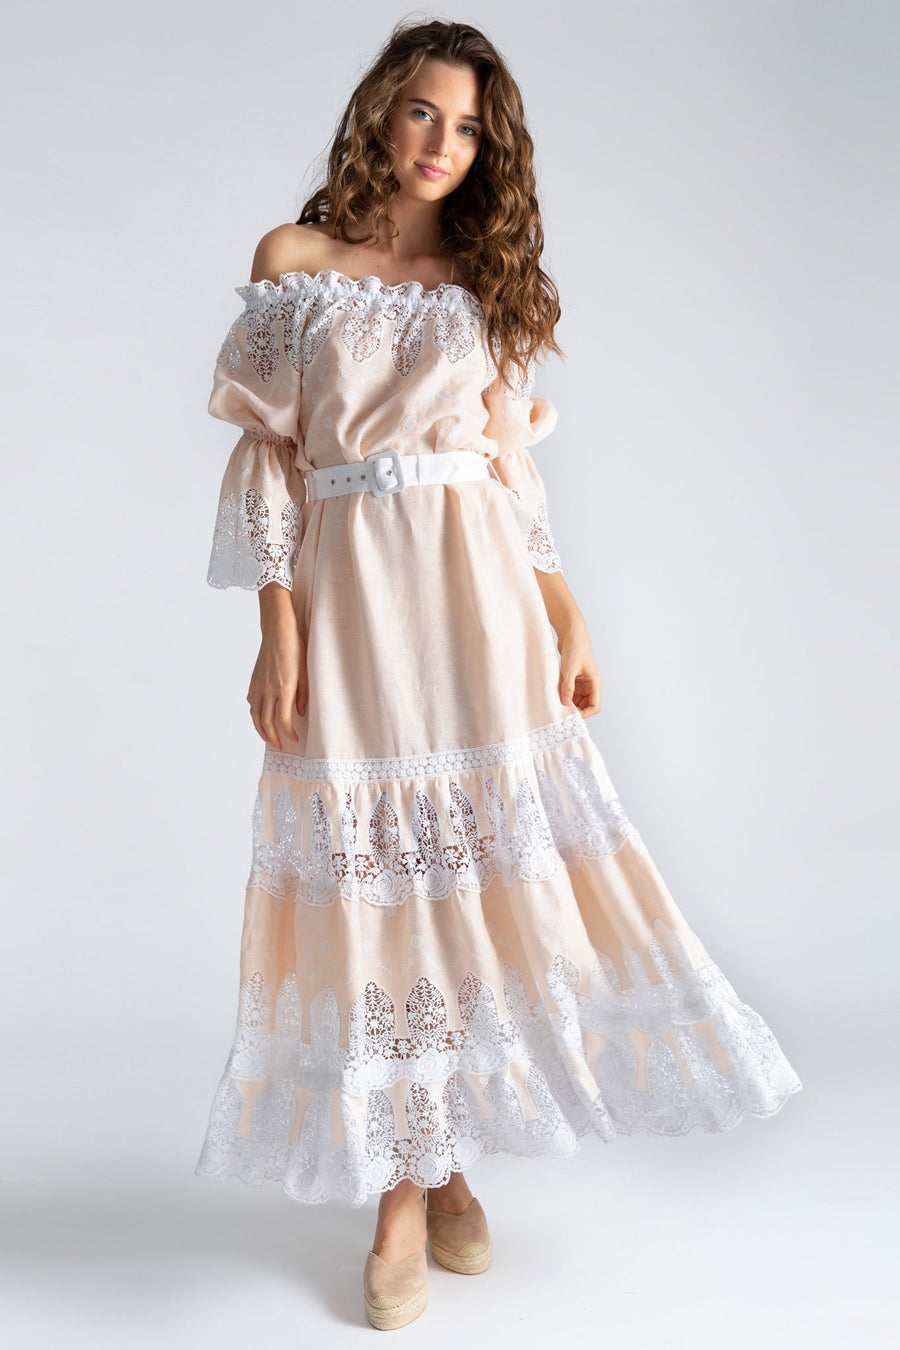 This is a photo of a woman wearing a floor length linen and lace dress that is off the shoulder with peasant sleeve. The neckline has white lace embroidery on the honey colored base linen and is styled with a solid white linen removable belt. There are 3 tiers of lace embroidery on the bottom of the dress.